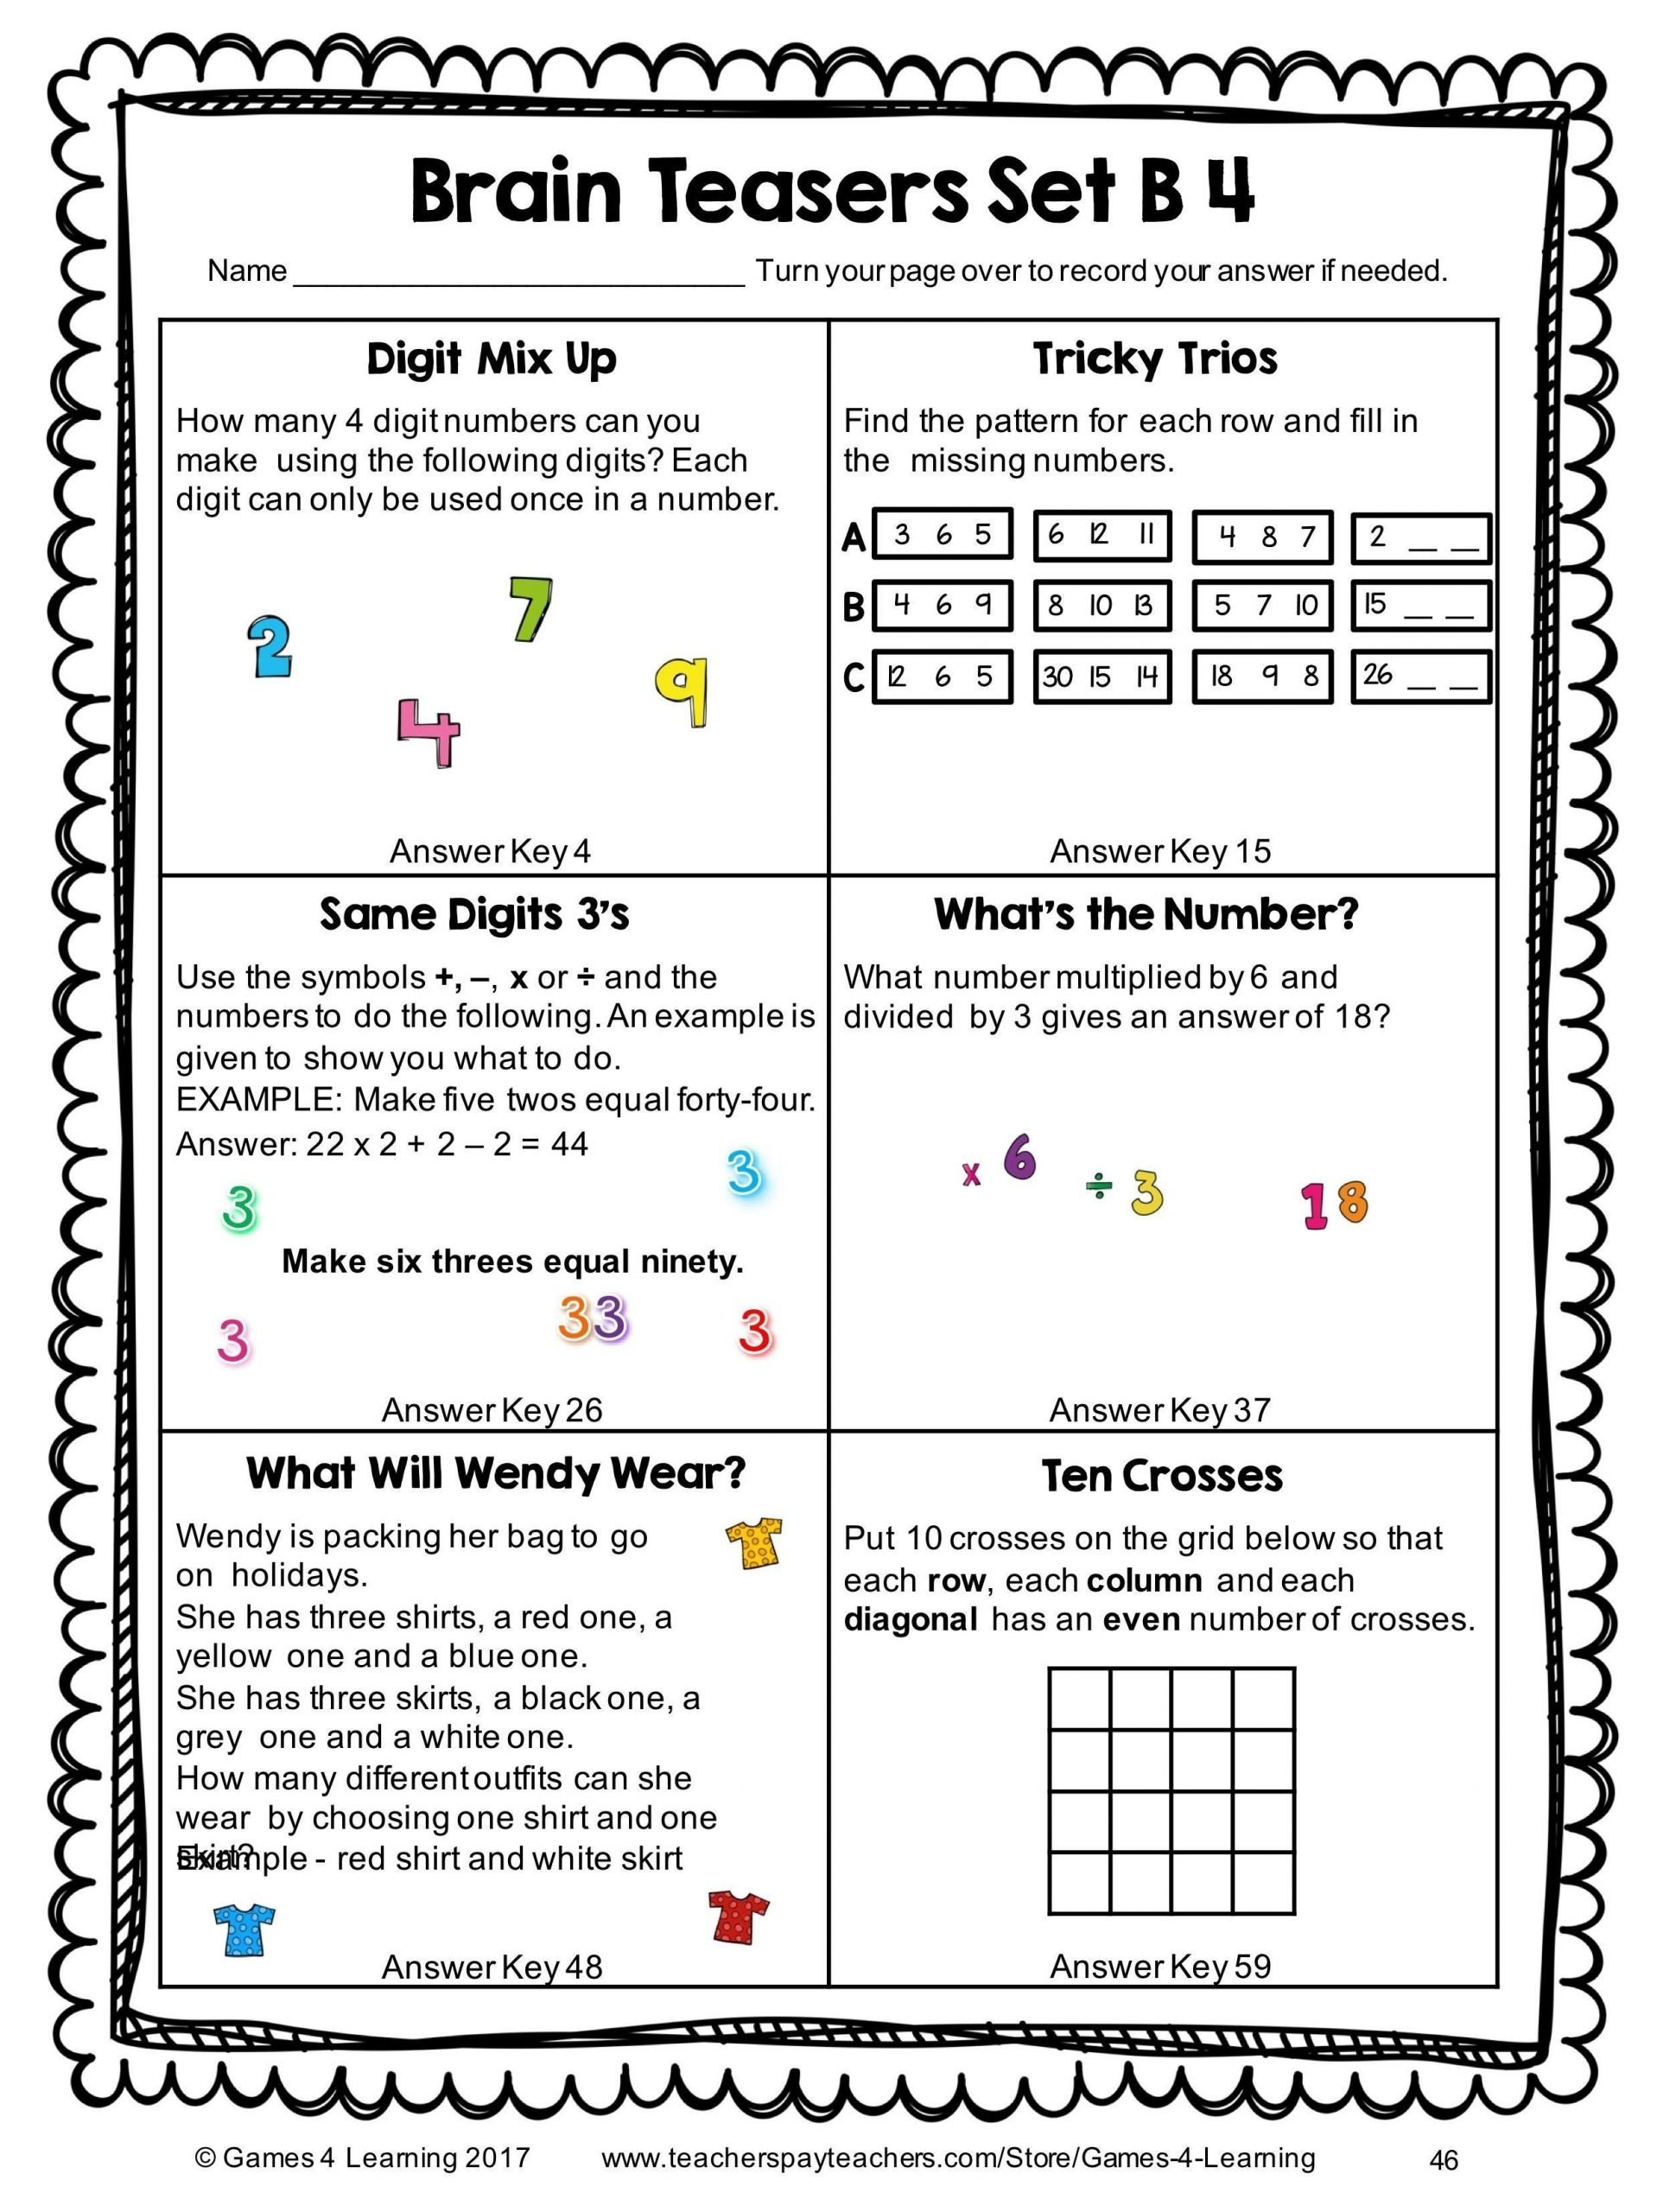 Brain Teaser Worksheets Brain Teasers Worksheets organization